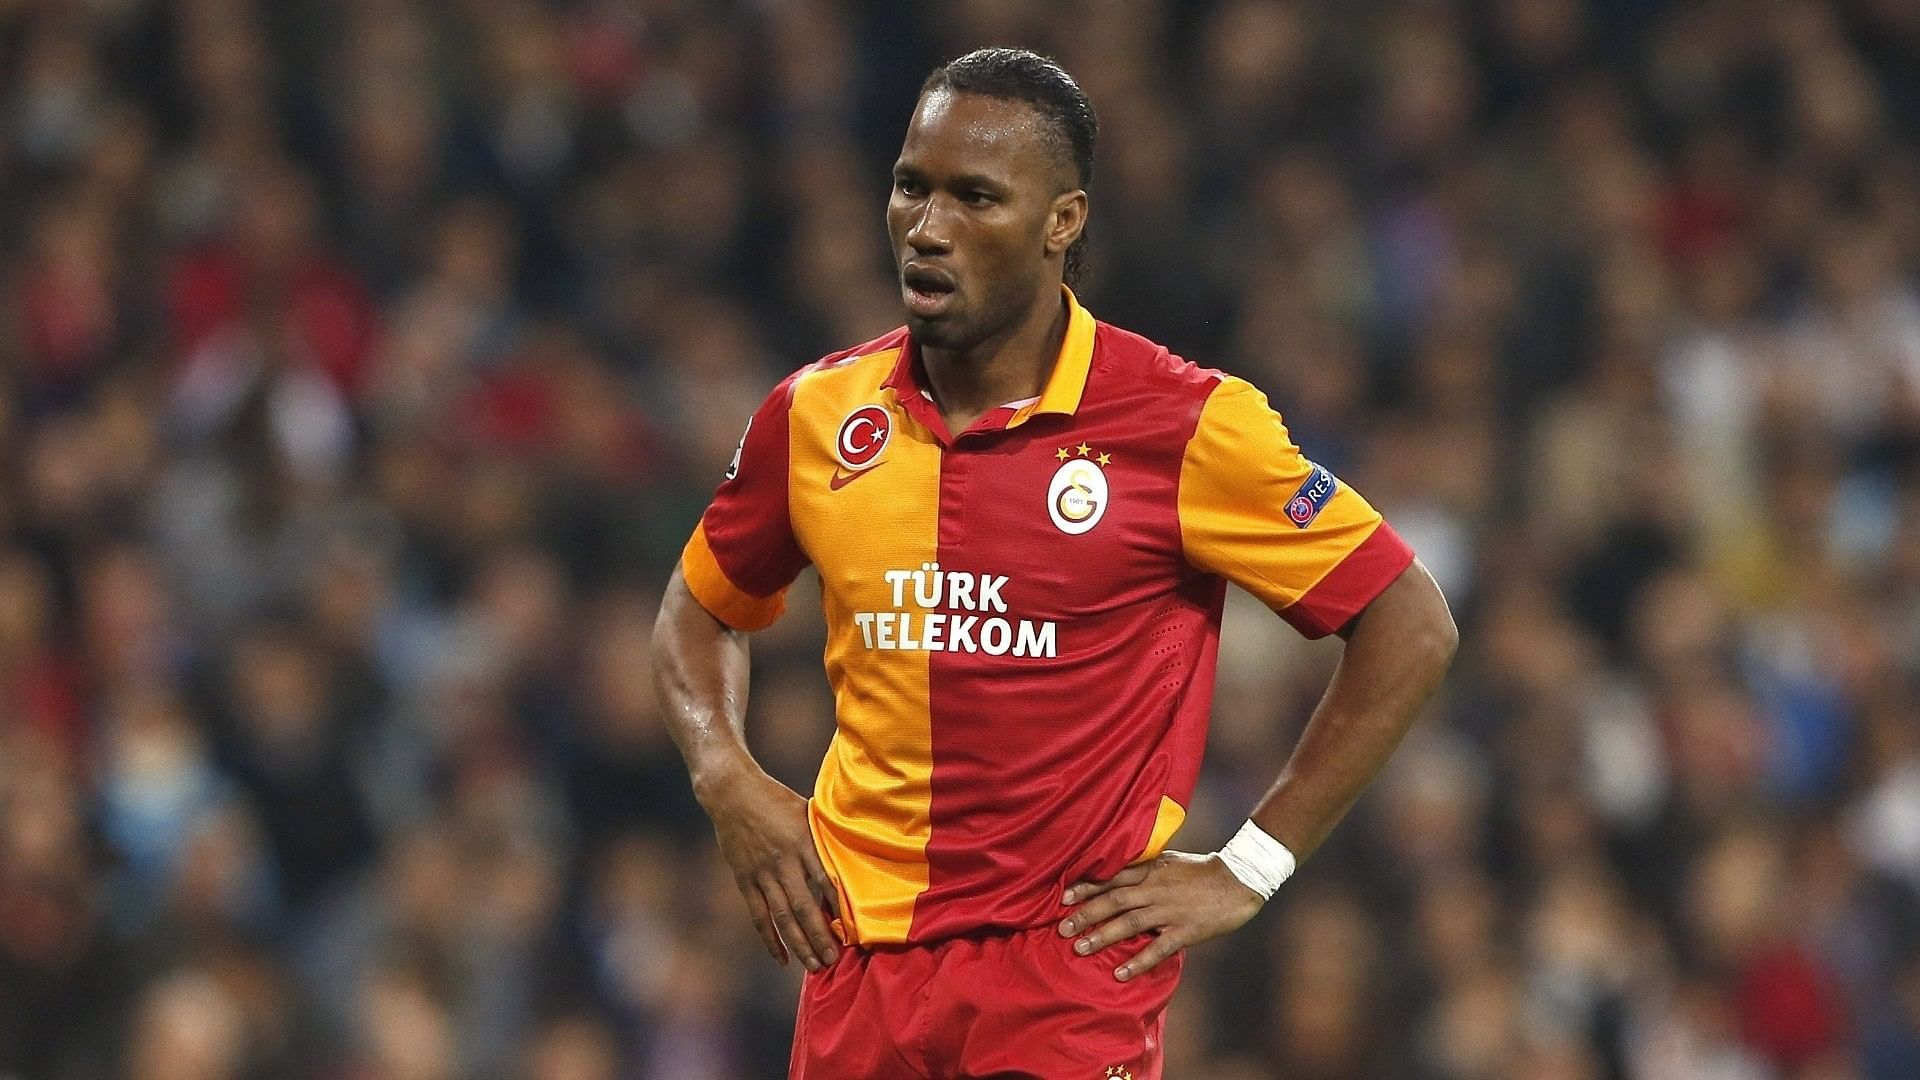 Rumour: Drogba could part with Galatasaray